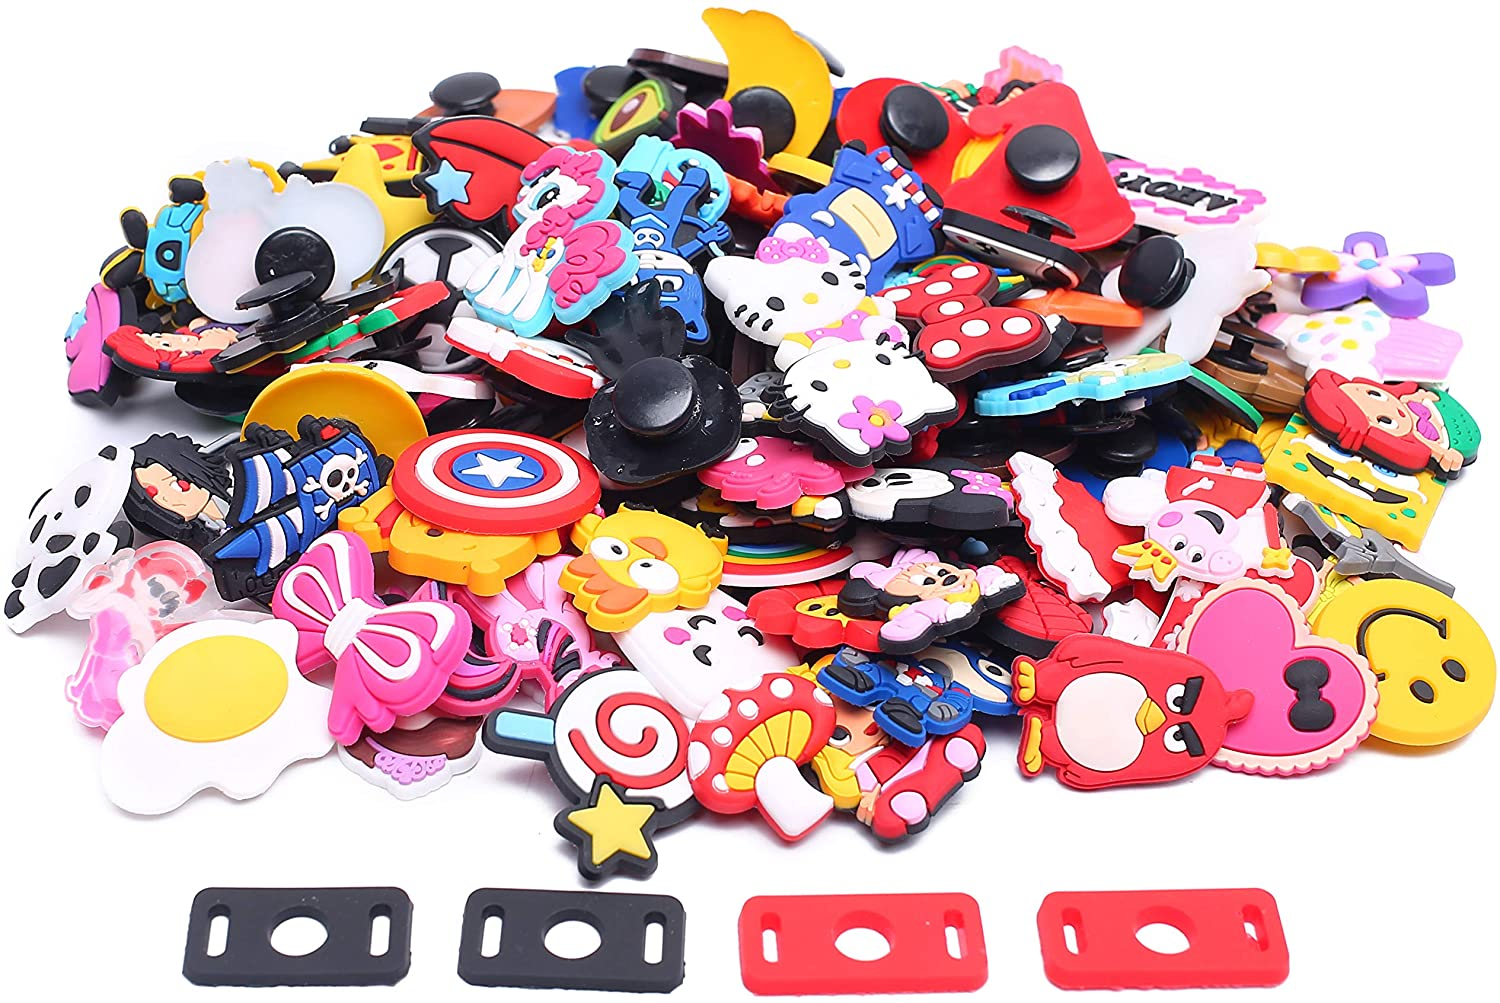 TANSWEET 100pcs Different Shape Disney Jibbitz for Croc Charms Peppa Pig for Teen Girls and Boys + 4pcs Shoe Lace Adapters Fits for Croc Clog Shoes Decorations Wristband Bracelet Party Gifts